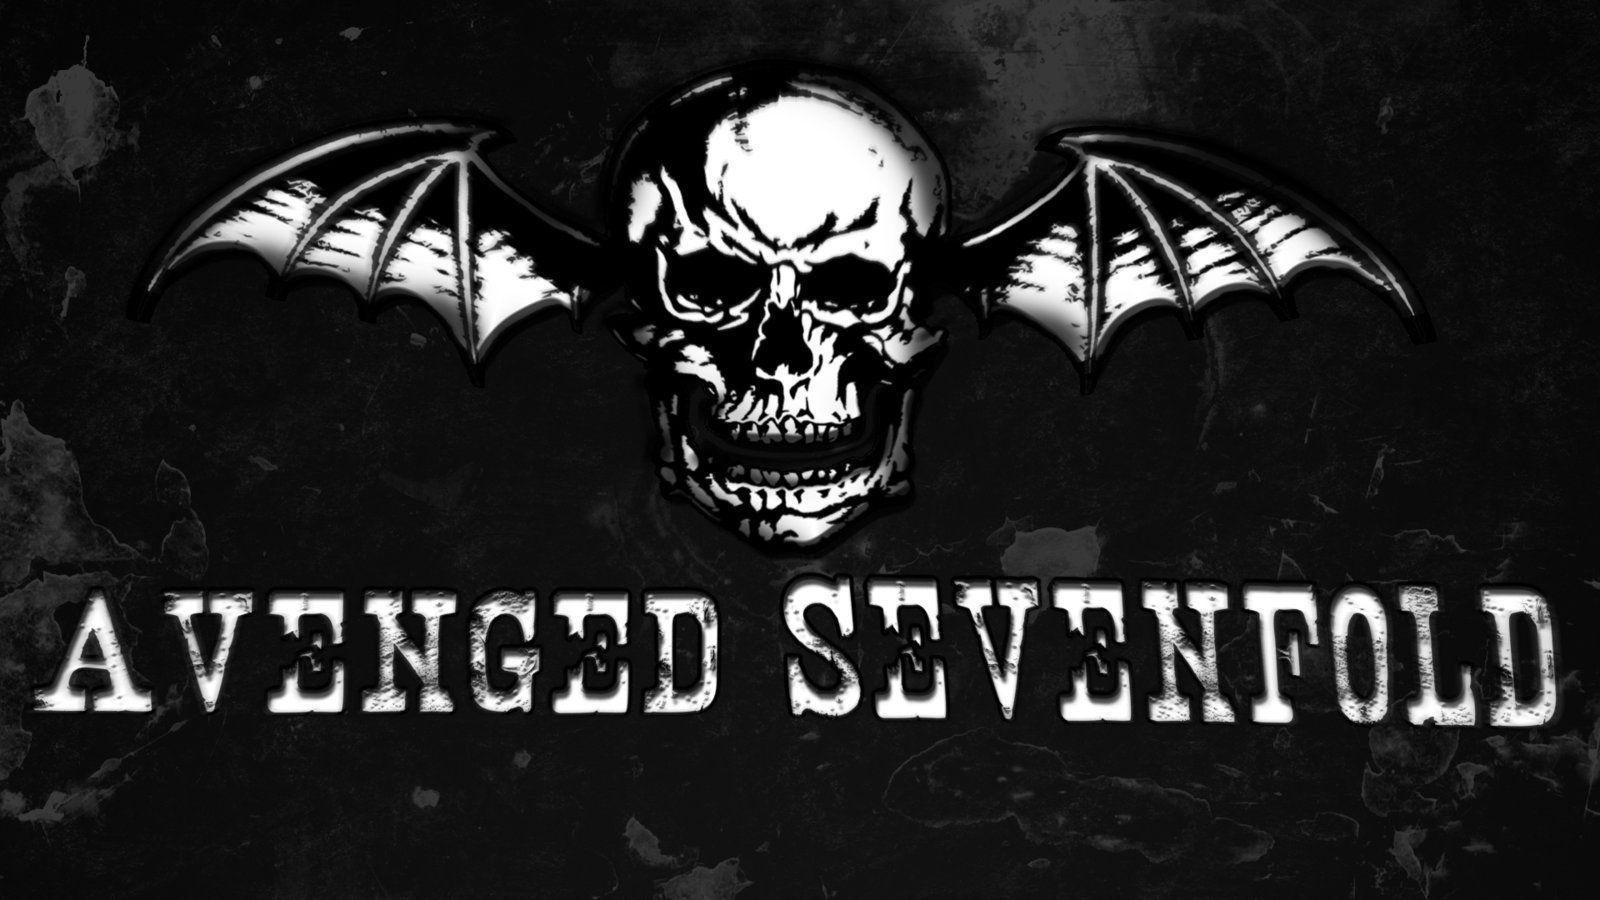 Avenged sevenfold wallpapers wallpaper cave hail to the king avenged sevenfold wallpaper by chaotichazard on voltagebd Image collections